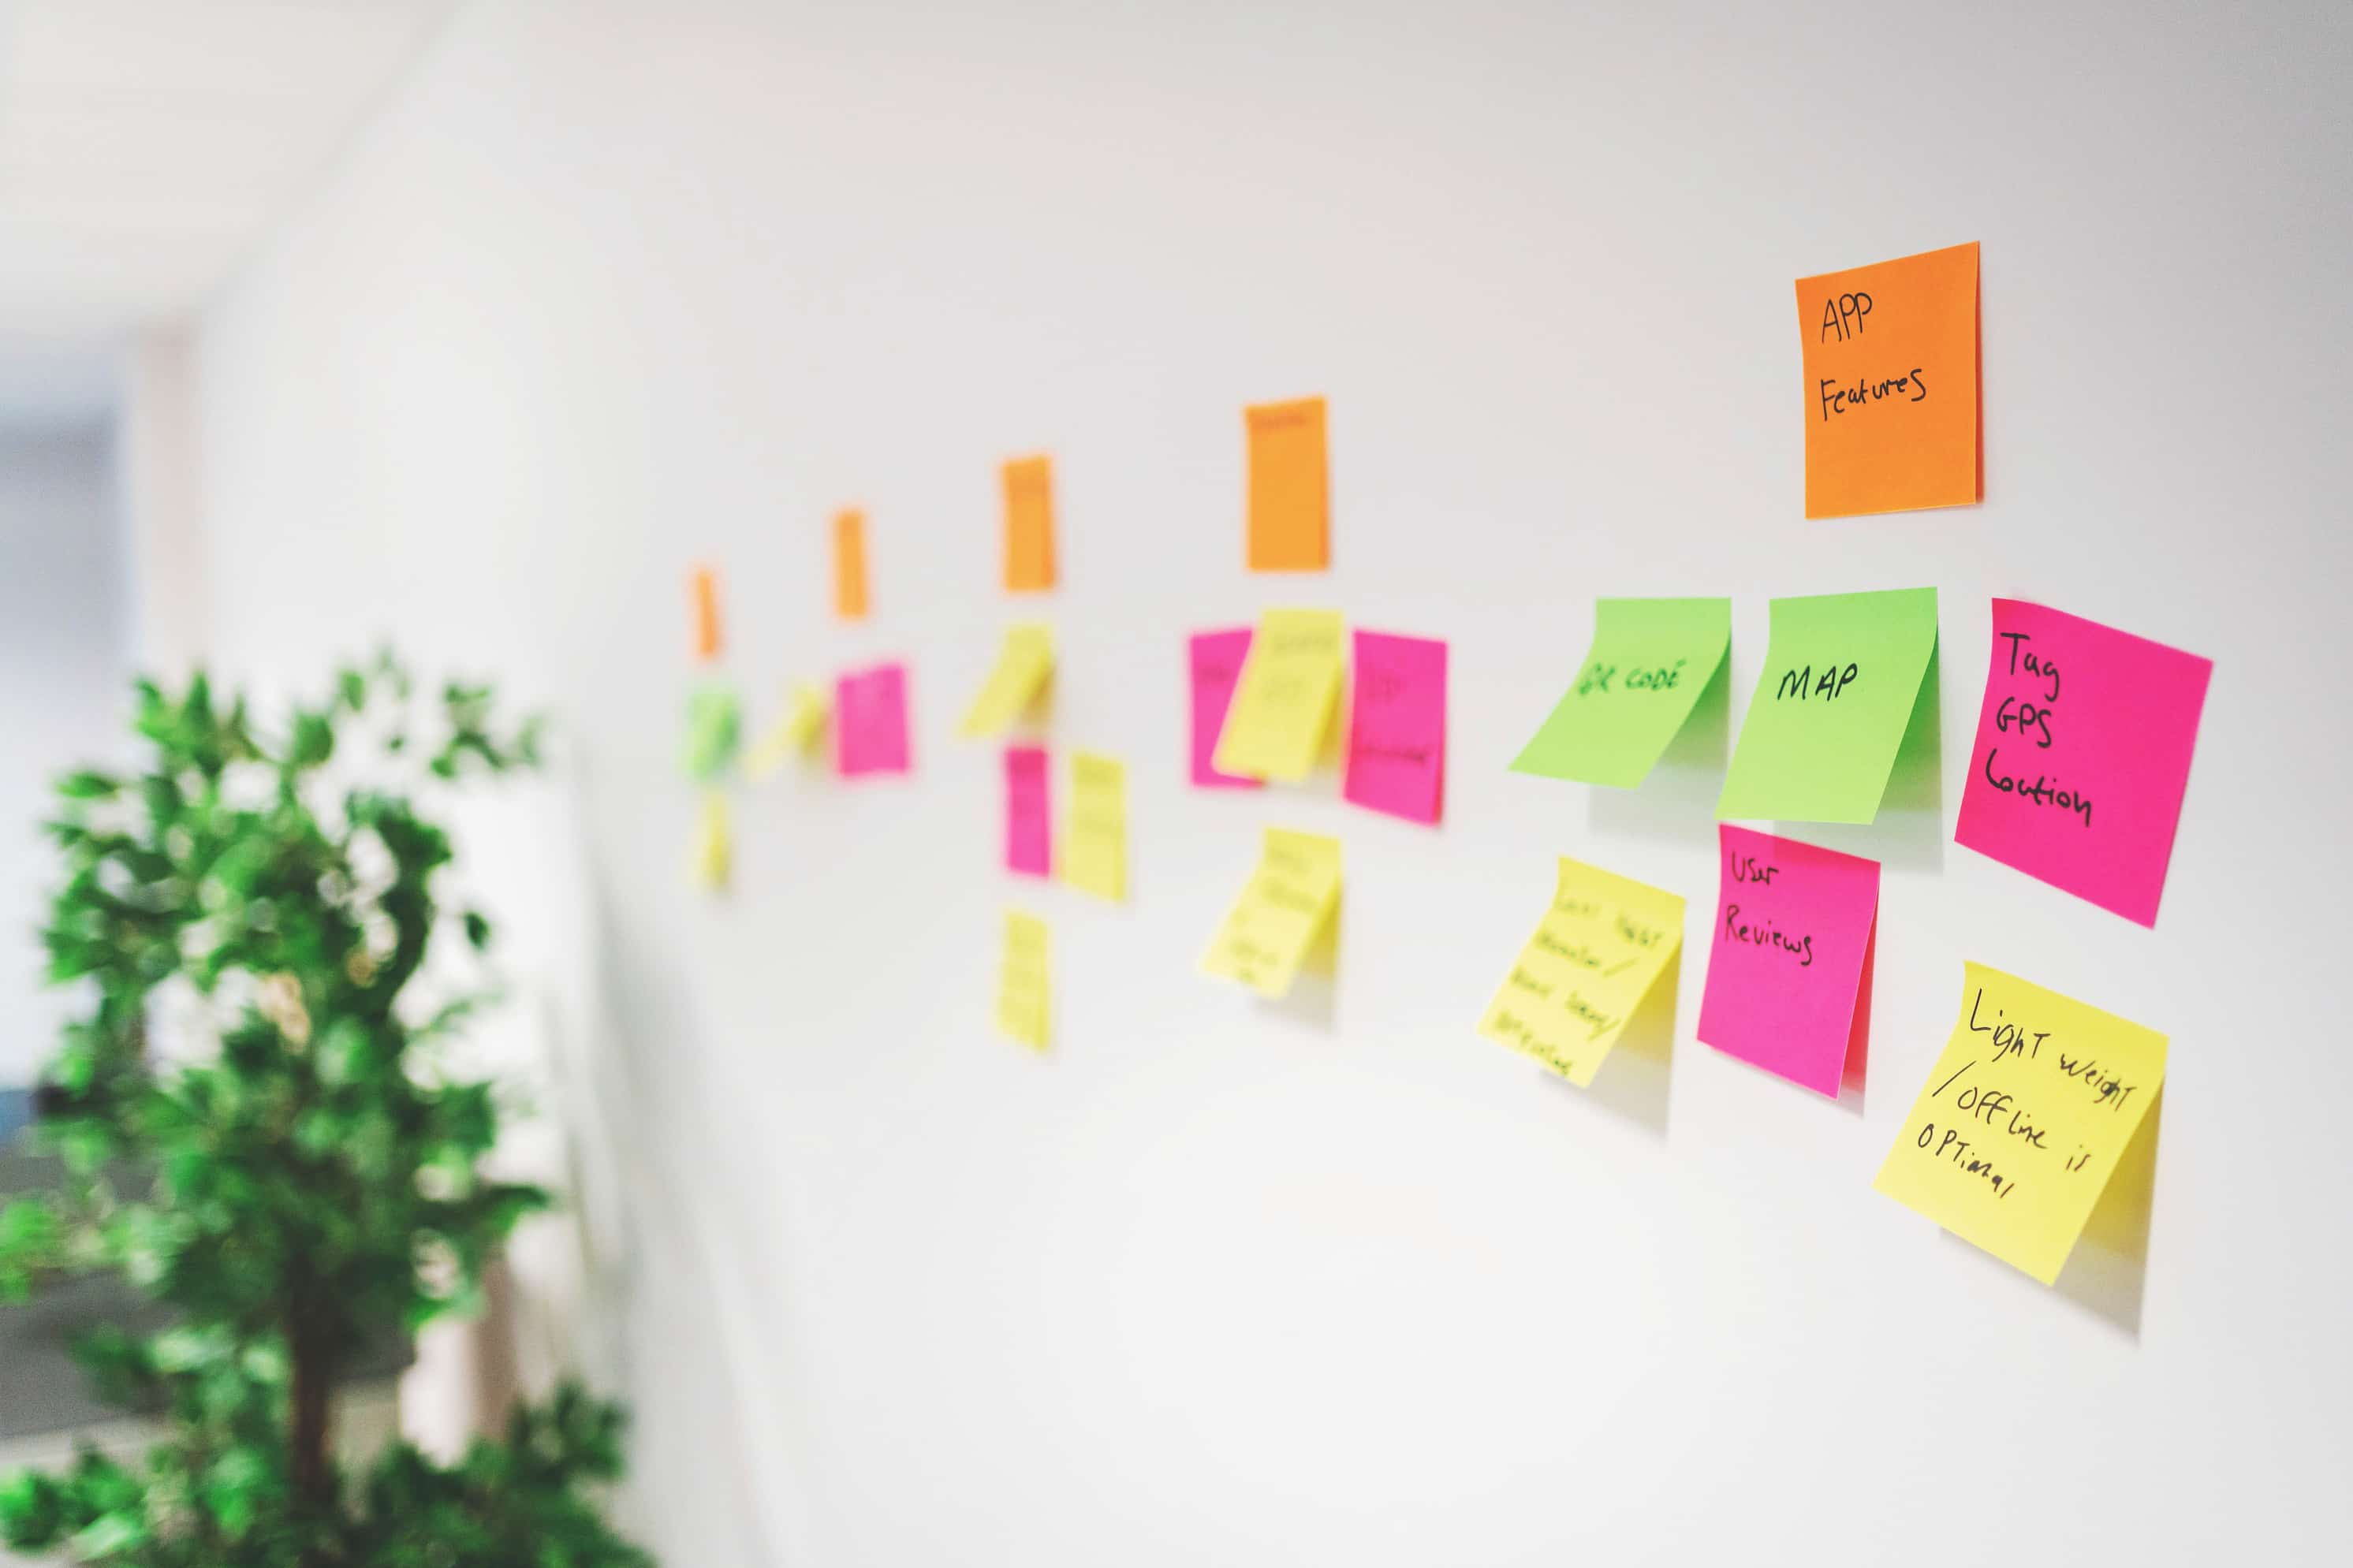 Post its on a wall to represent website development by hiyield.